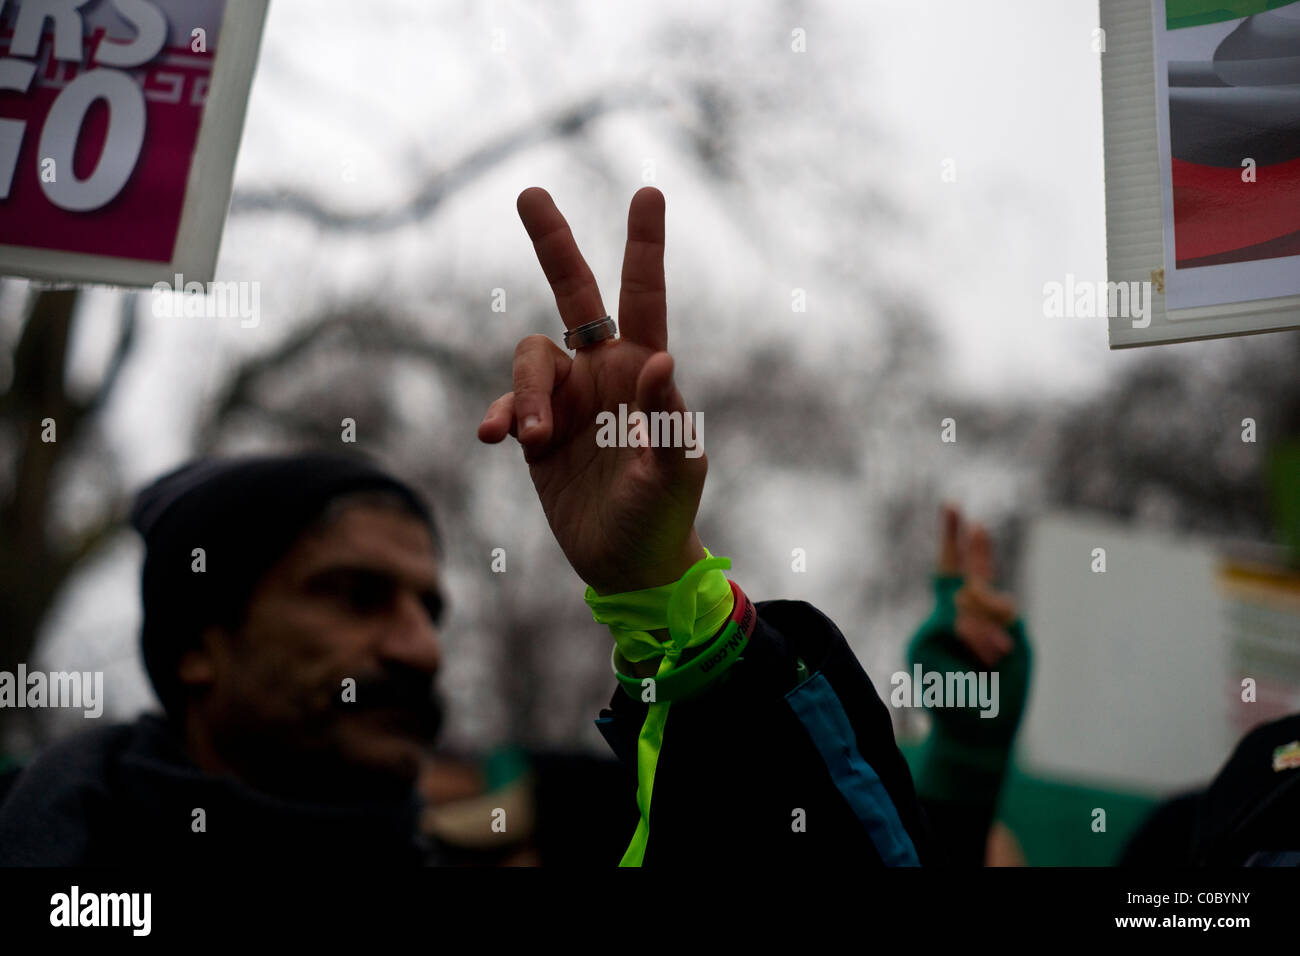 Protest outside the Iranian embassy in London - Stock Image